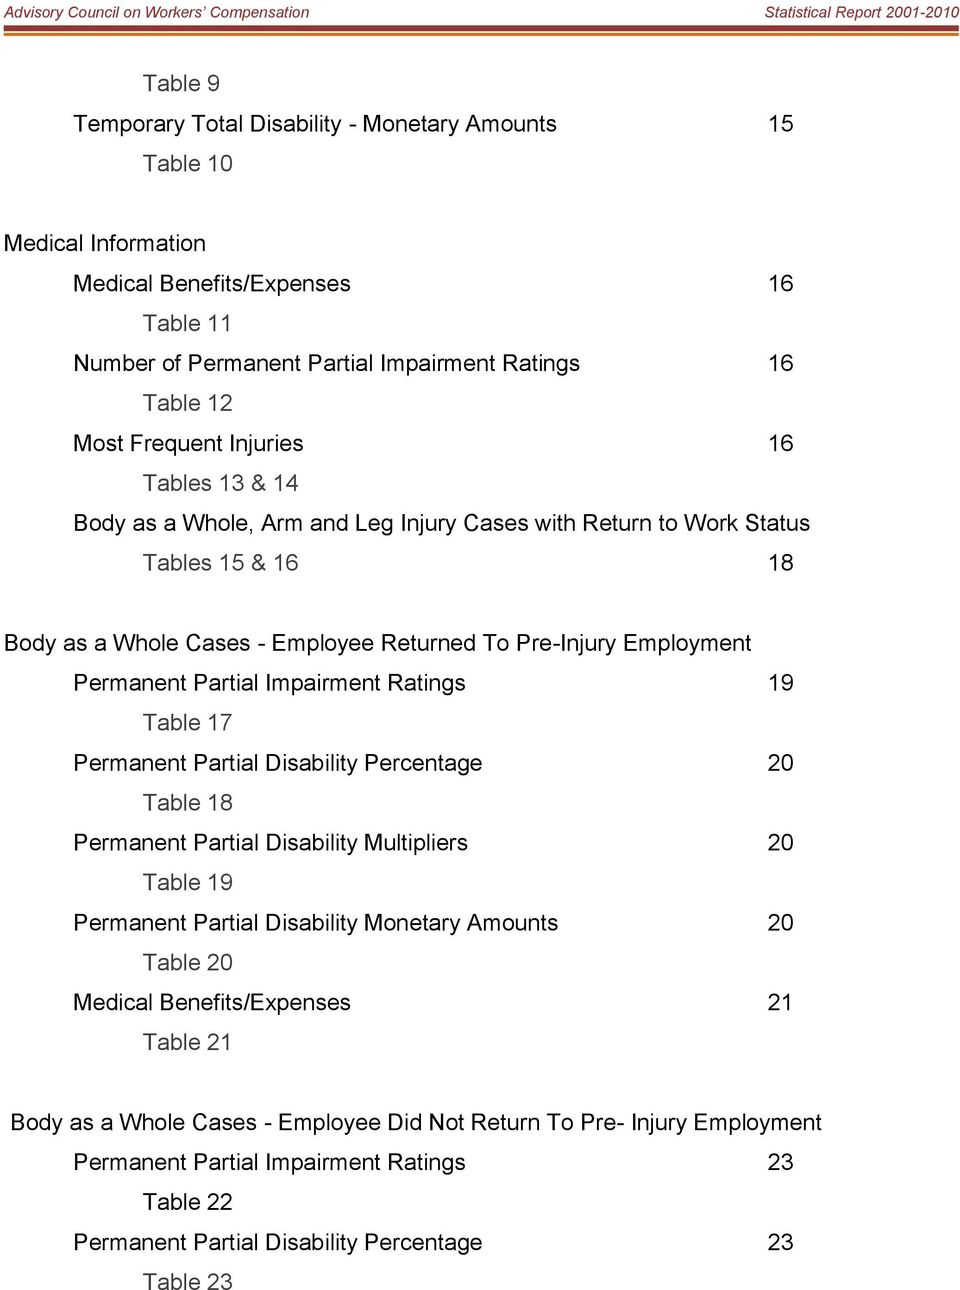 Impairment Ratings 19 Table 17 Permanent Partial Disability Percentage 20 Table 18 Permanent Partial Disability Multipliers 20 Table 19 Permanent Partial Disability Monetary Amounts 20 Table 20